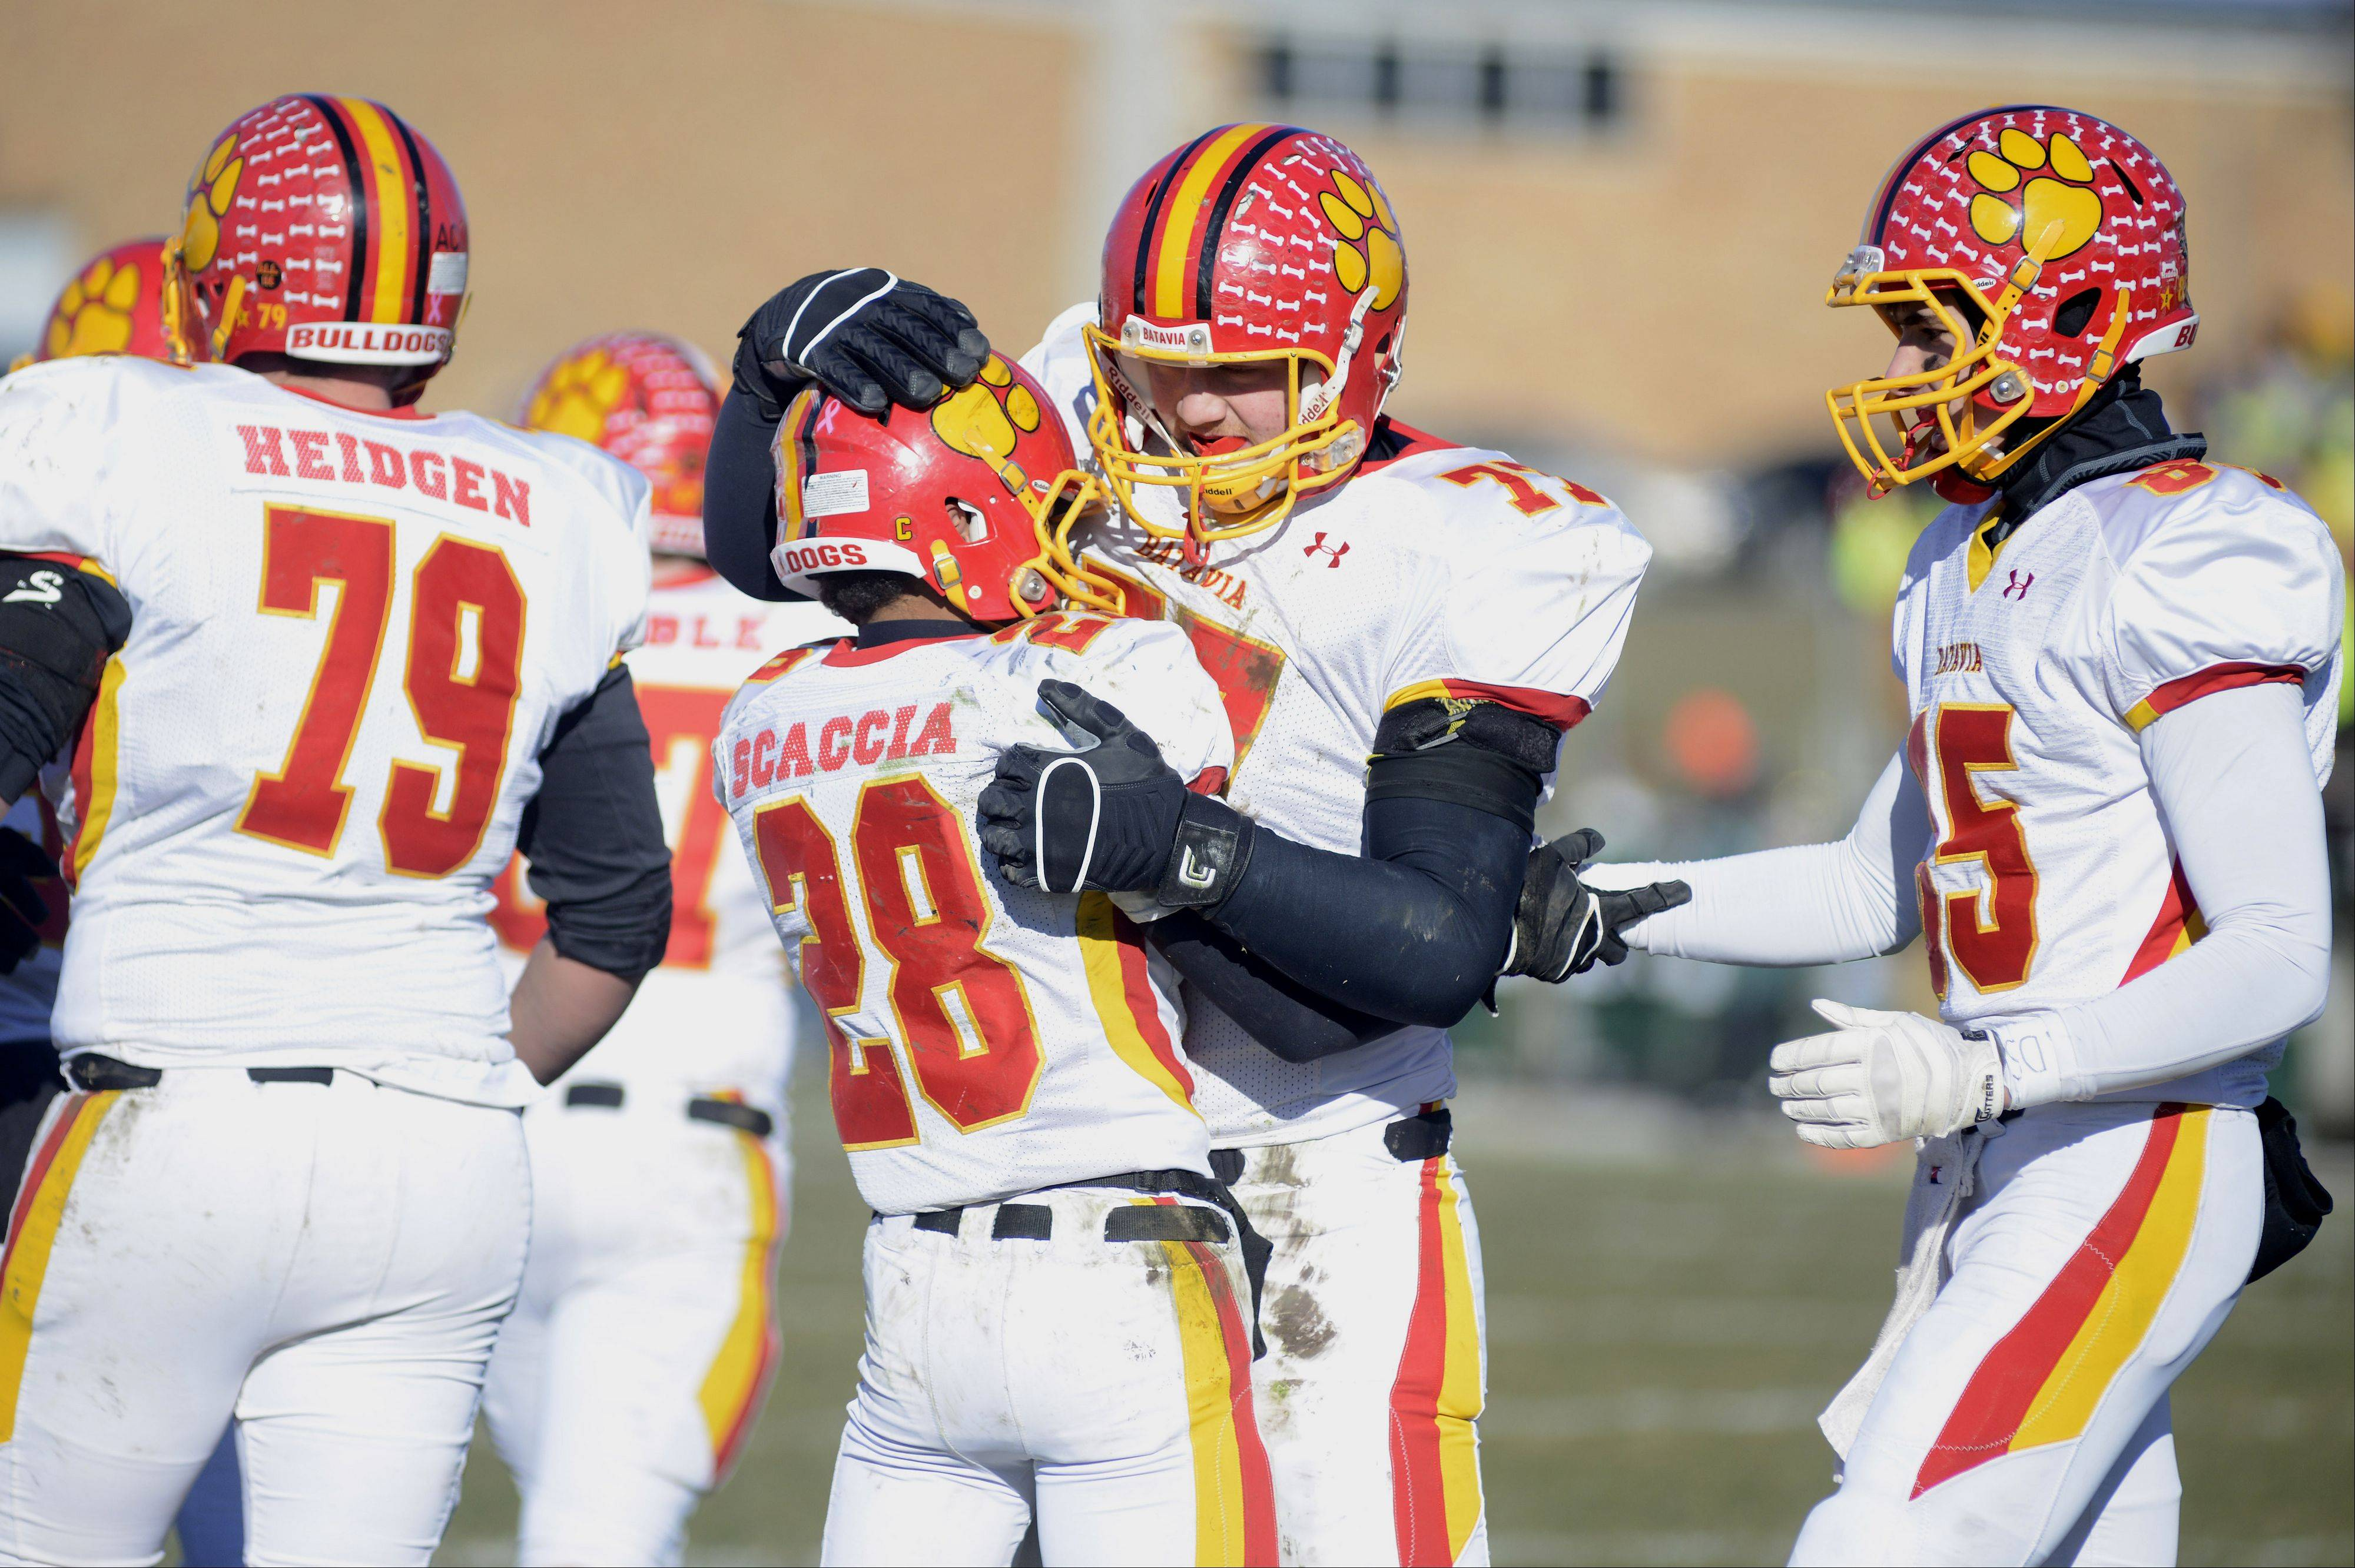 Batavia's Anthony Scaccia is congratulated by teammates Jack Breshears (77) and Jordan Zwart after scoring a touchdown in the second quarter of the Class 6A semifinal game on Saturday, November 23.